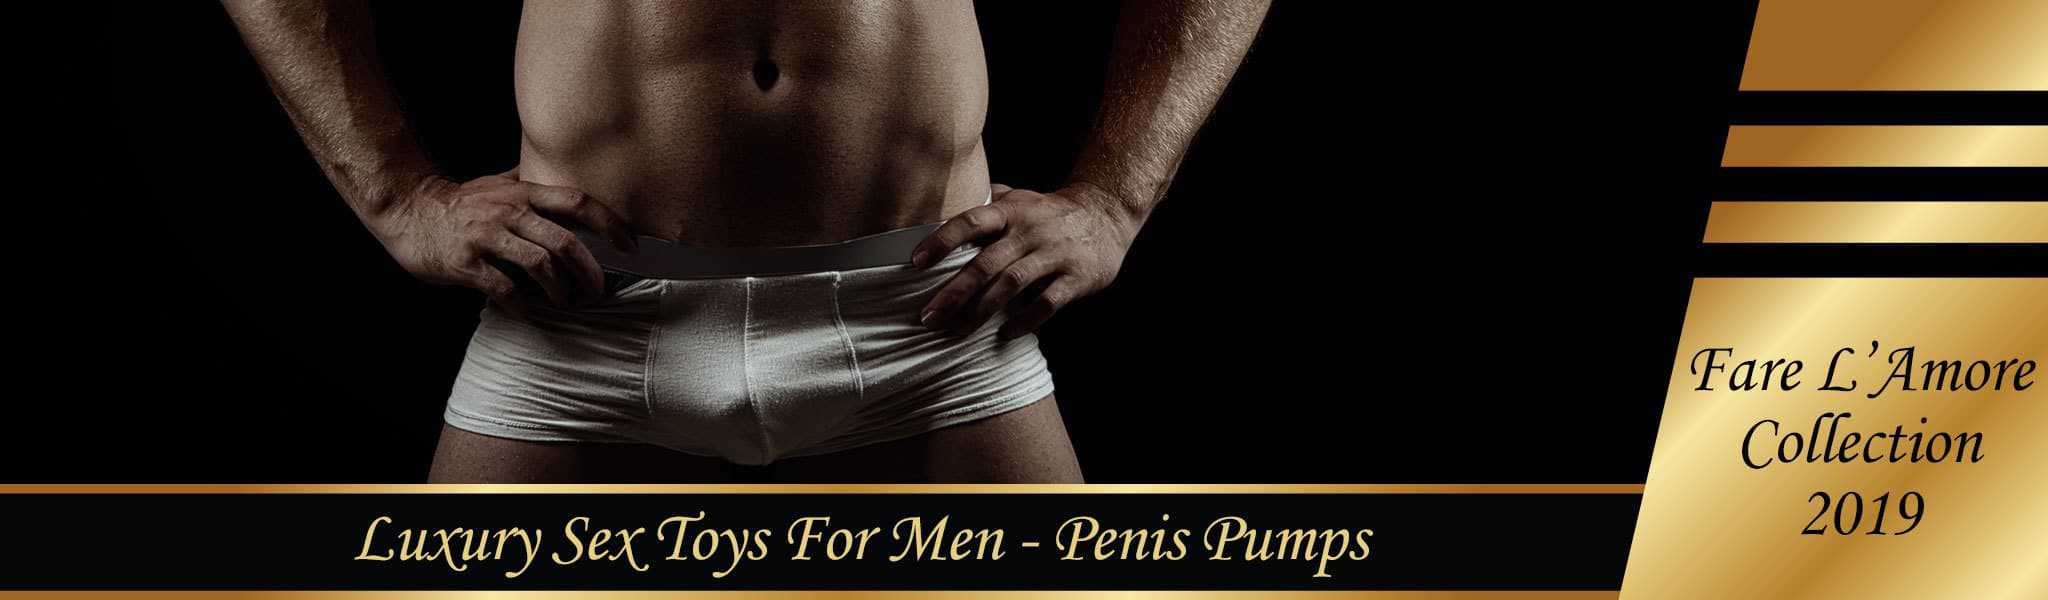 Penis Pumps | Luxury Sex Toys For Men